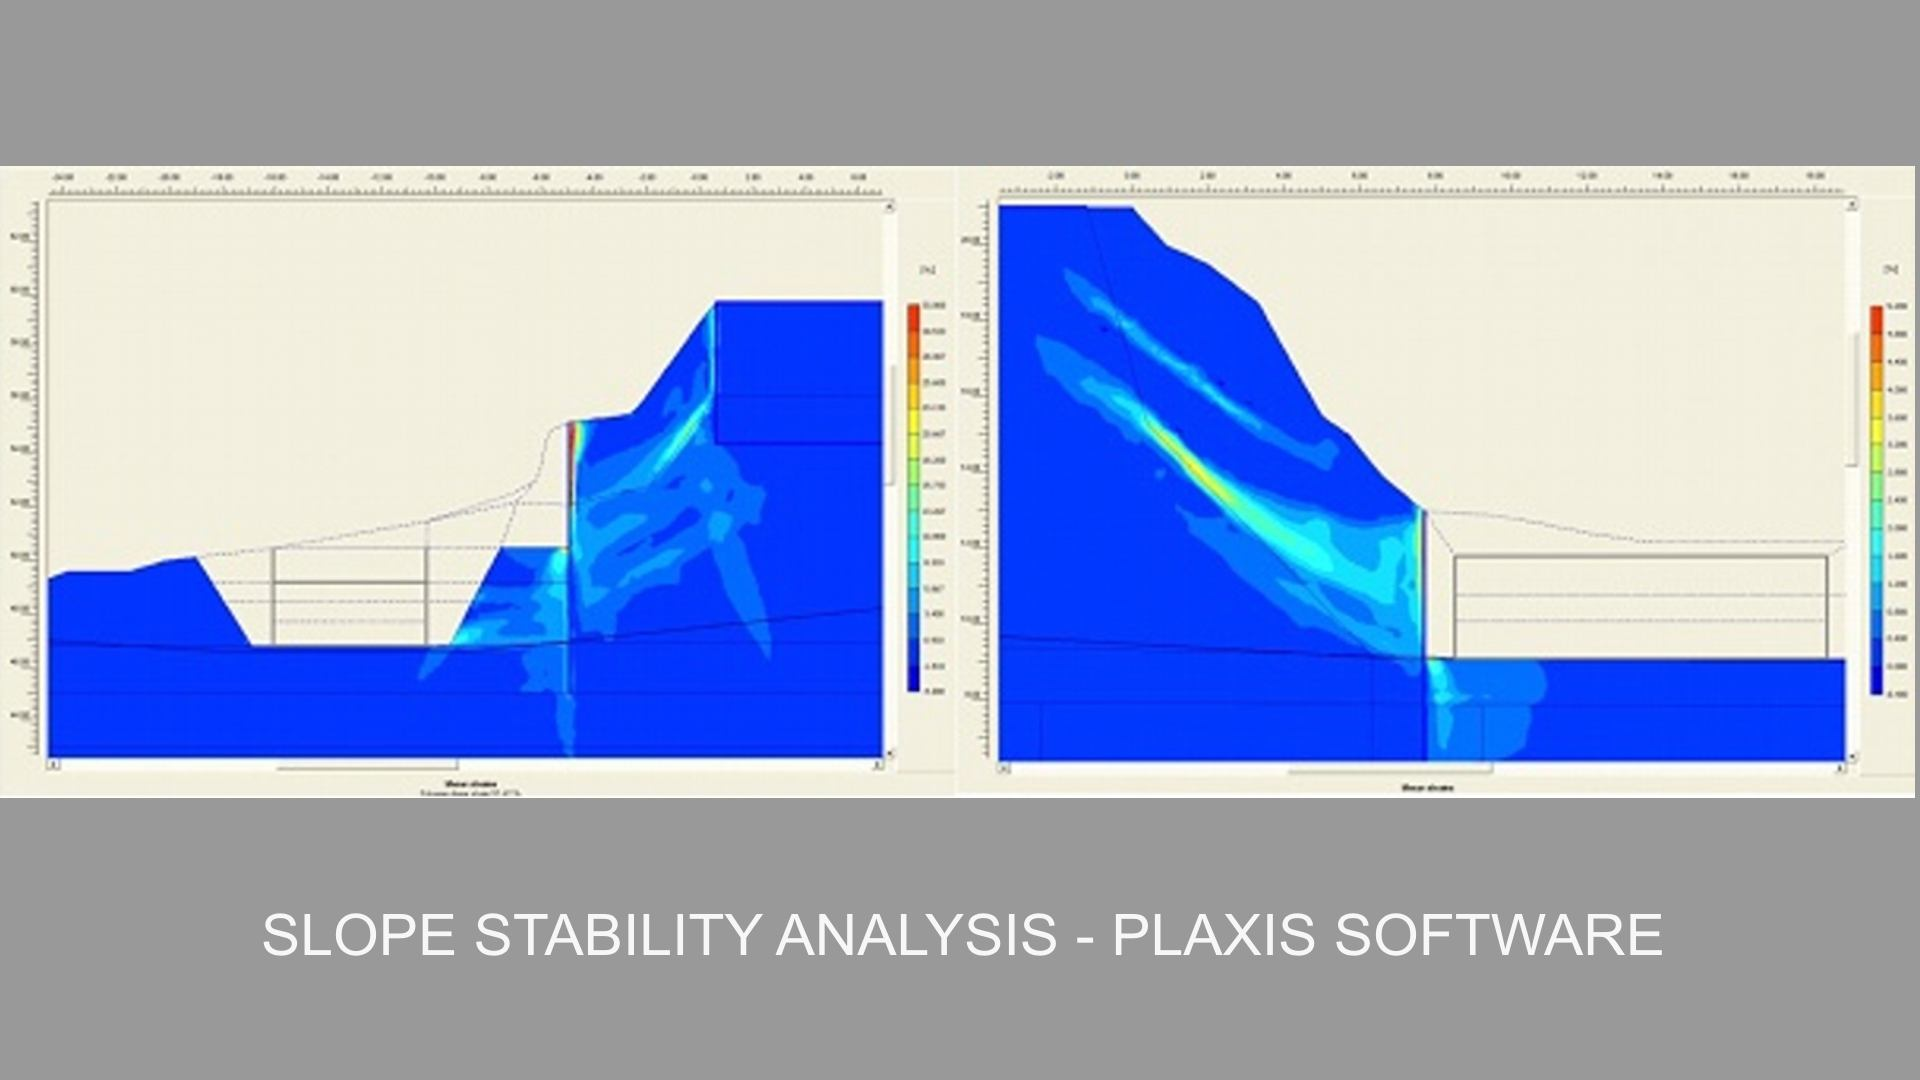 Slope_stability_Analysis_Plaxis_Software_1920x1080